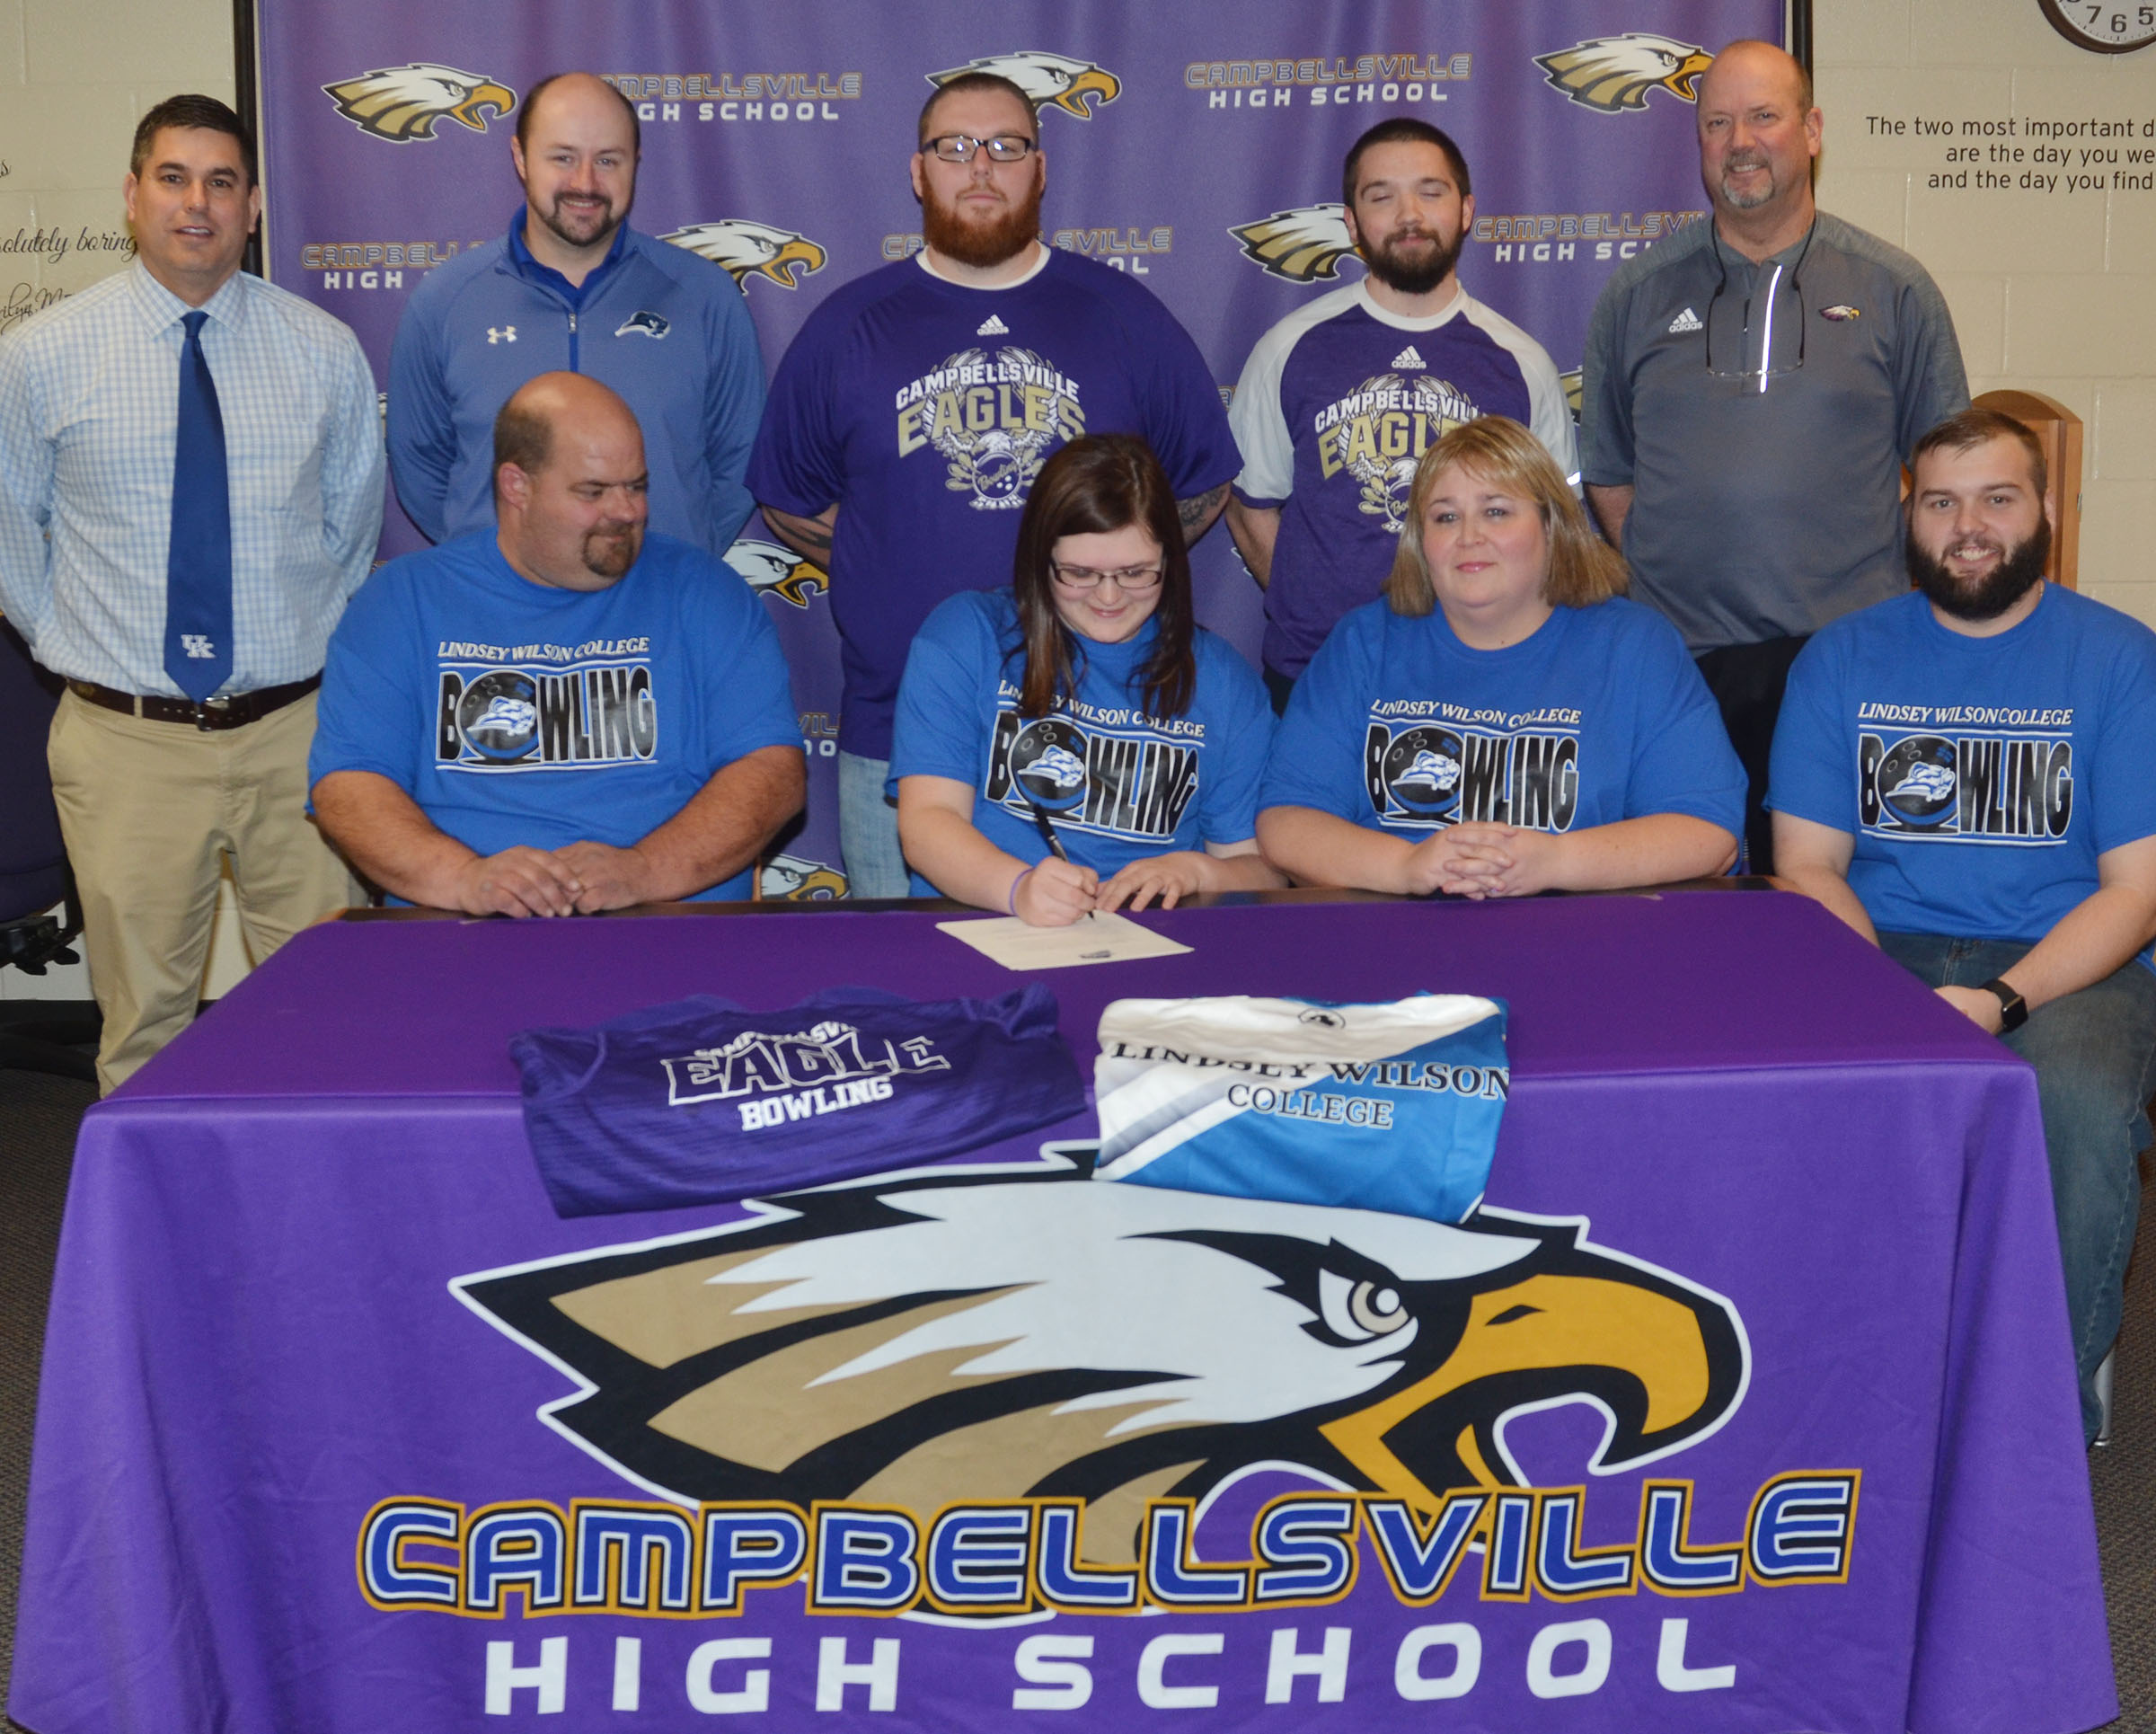 Campbellsville High School senior Vera Brown will continue her academic and bowling career at Lindsey Wilson College in the fall. She officially signed her letter of intent in a special ceremony on Wednesday, Feb. 1. From left, front, are her father Shannon Brown, Vera, her mother Tonya Tate, and stepfather Andrew Tate. Back, CHS Principal Kirby Smith, LWC bowling coach Brandon Burns, CHS head bowling coach Stephen Tucker, CHS assistant bowling coach Dakota Pendleton and CHS Athletic Director Tim Davis.